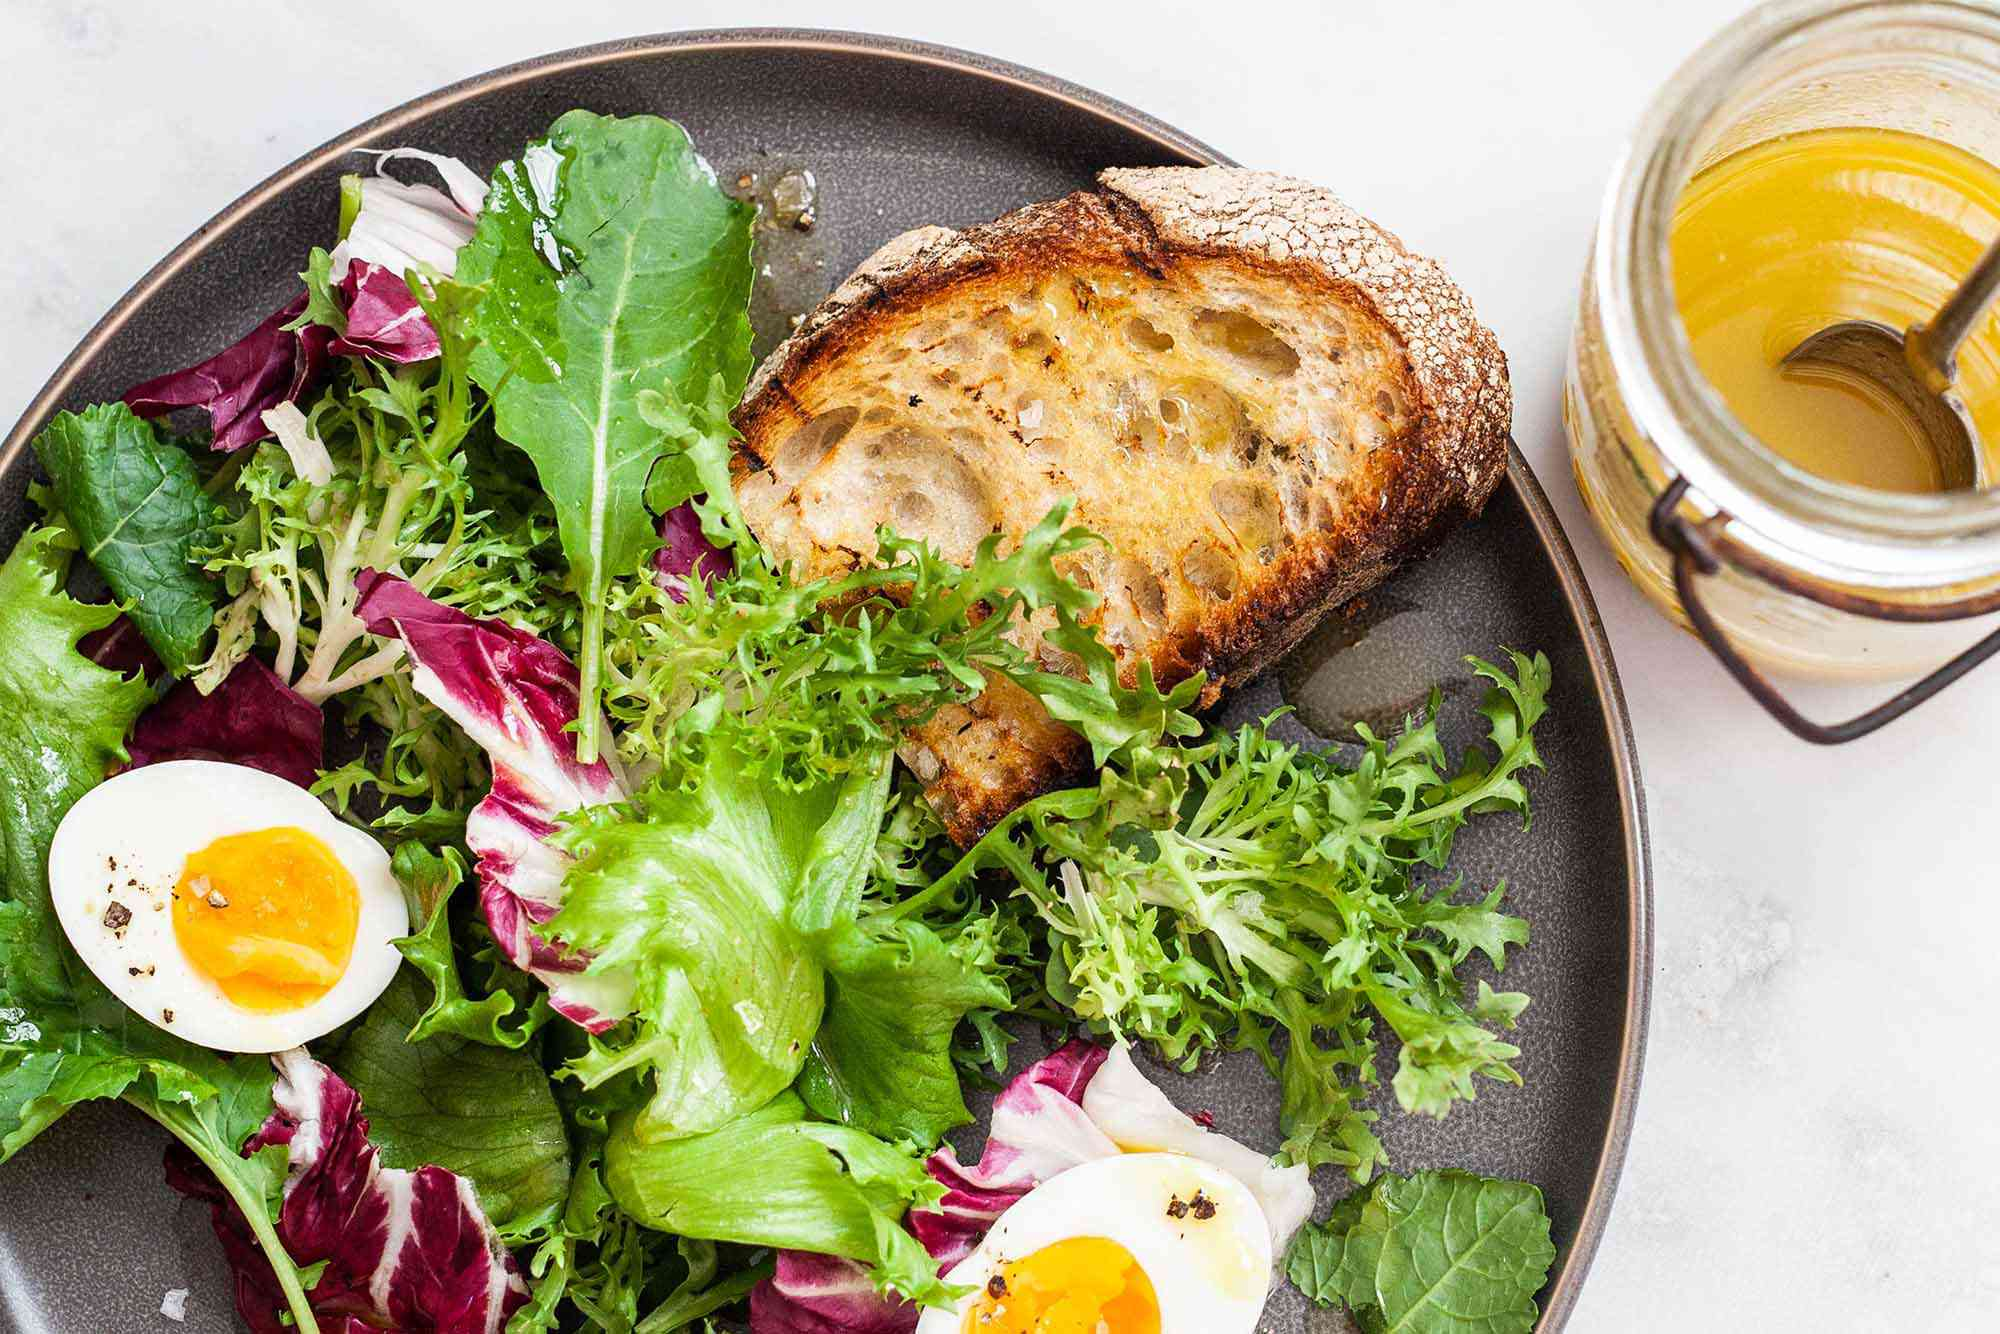 Simple Side Salad -- salad greens with hard boiled eggs and toast